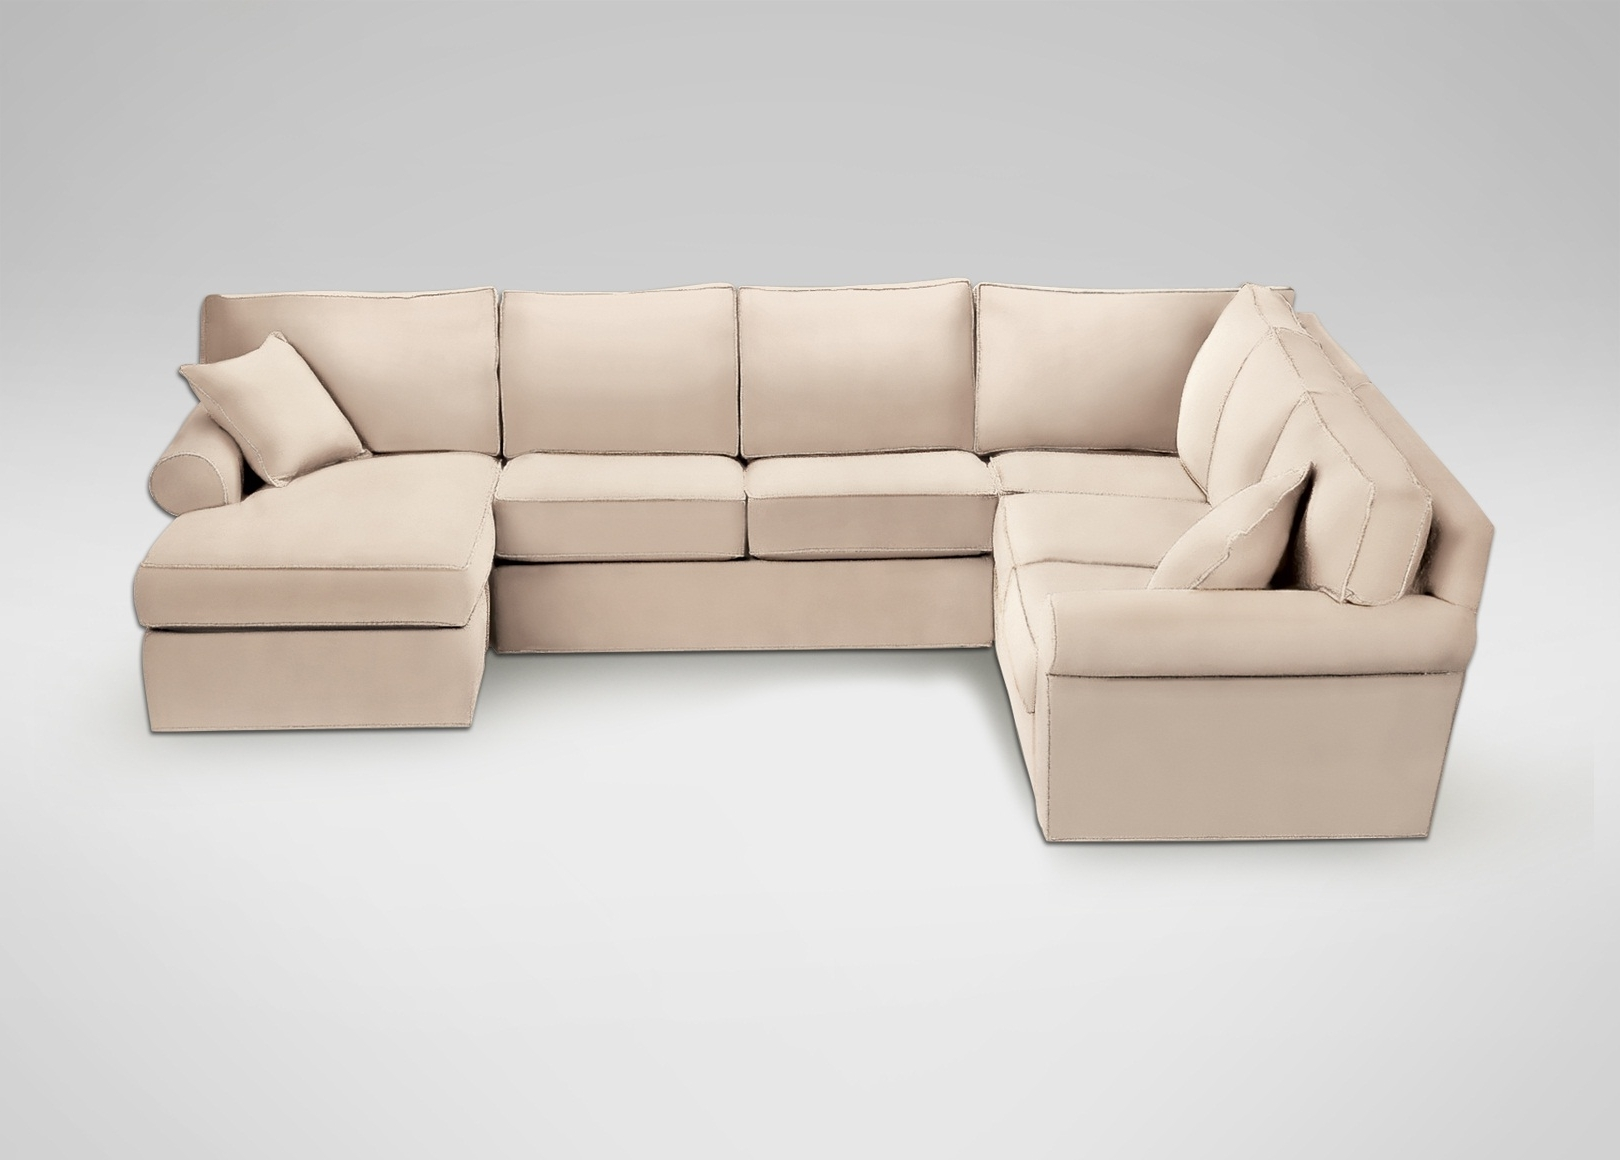 Favorite Sectional Sofas At Ethan Allen For Cool Ethan Allen Sectional Sofas (View 11 of 15)